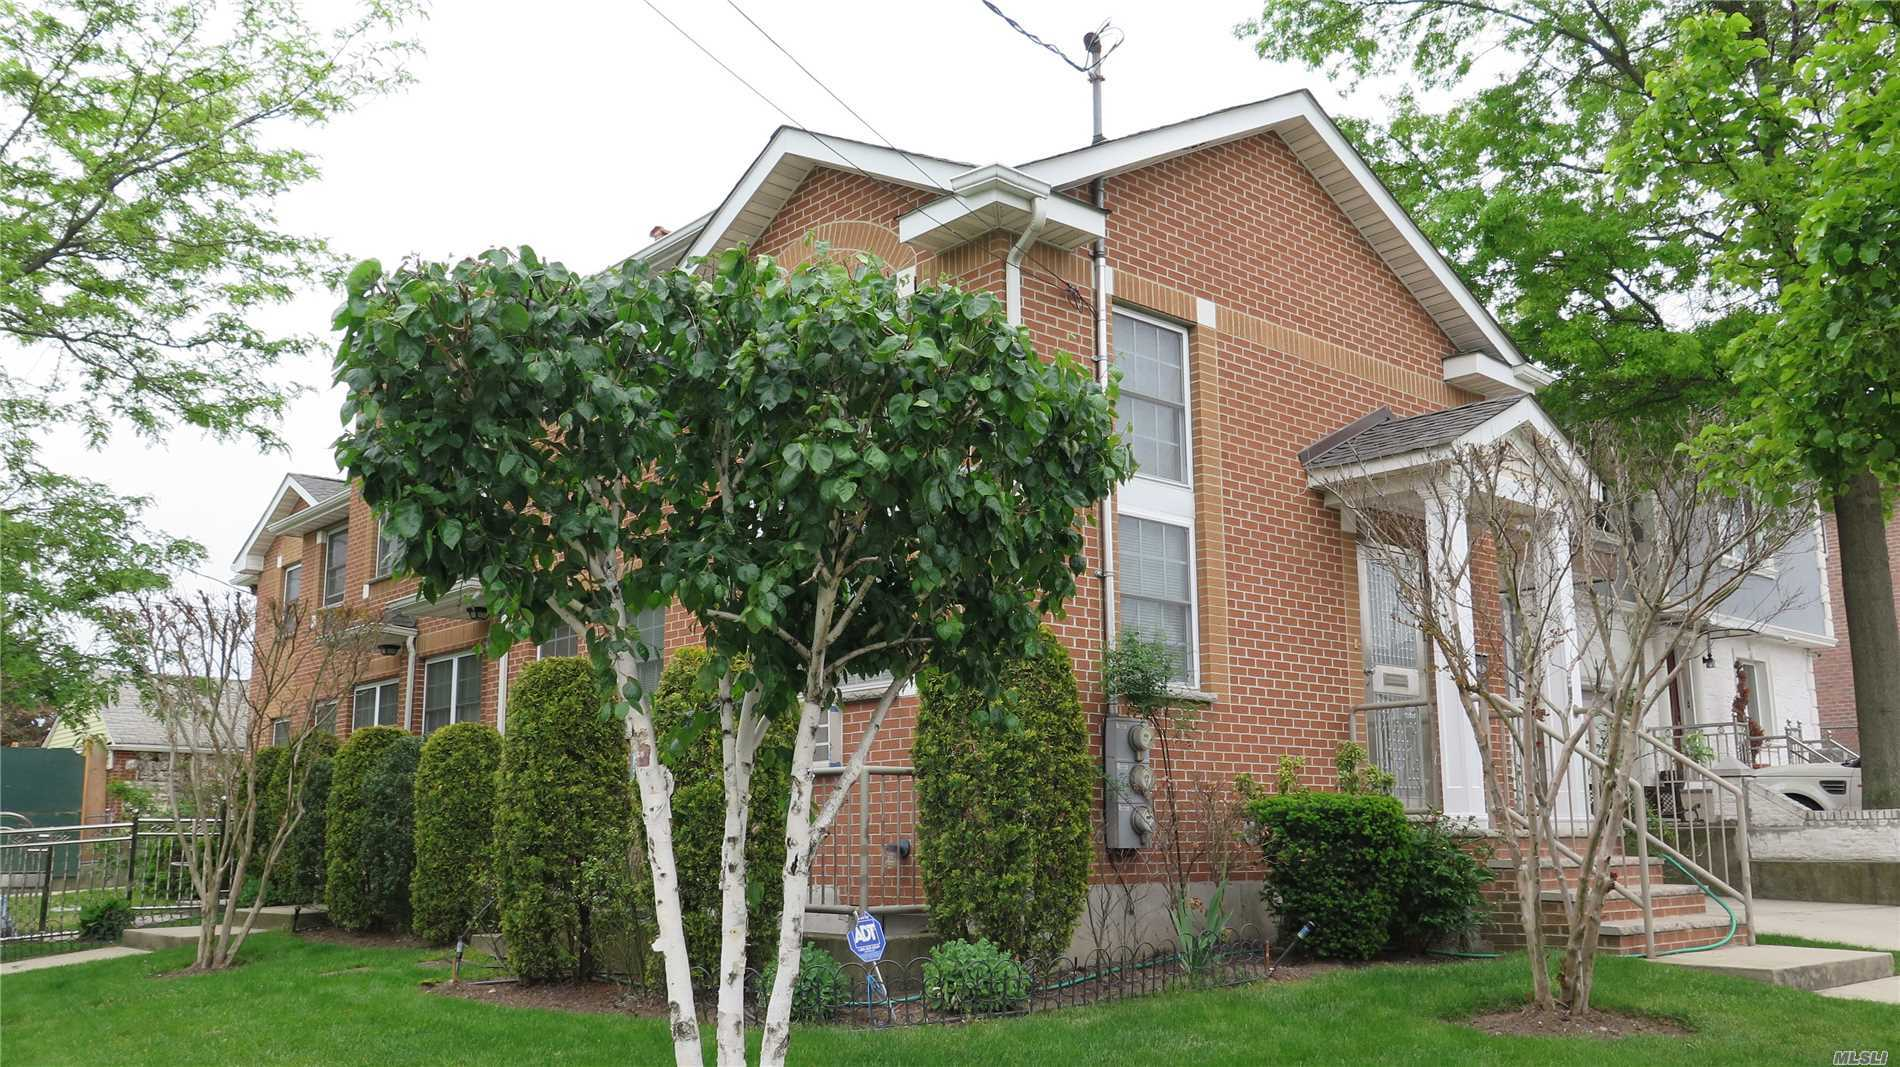 Whole House For Rent-1st Flr-Lrge Living Rm -Kitch/Dine Area-2nd Flr-3 Bedrooms-Mstr Fbth & + Fbth & Balcony-Walkin Closets- *Included Basement And Laundry Room-Half Bth. *Includes 2 Parking Spaces-Walk To Kissena Park & Bus Stop To Main St. & 7 Train-To Ny Presbyterian Queens Hospital-No Pets Allowed-Near School-Supermarket-Golf Course-Tennis Ct-Jogtrail-Kidspark-Tenant Pays All Utilities Except Water**For 1st Year $150. X 12 Discount Applied To The 12th Month Last Rent If Lease Signed On 8/26.